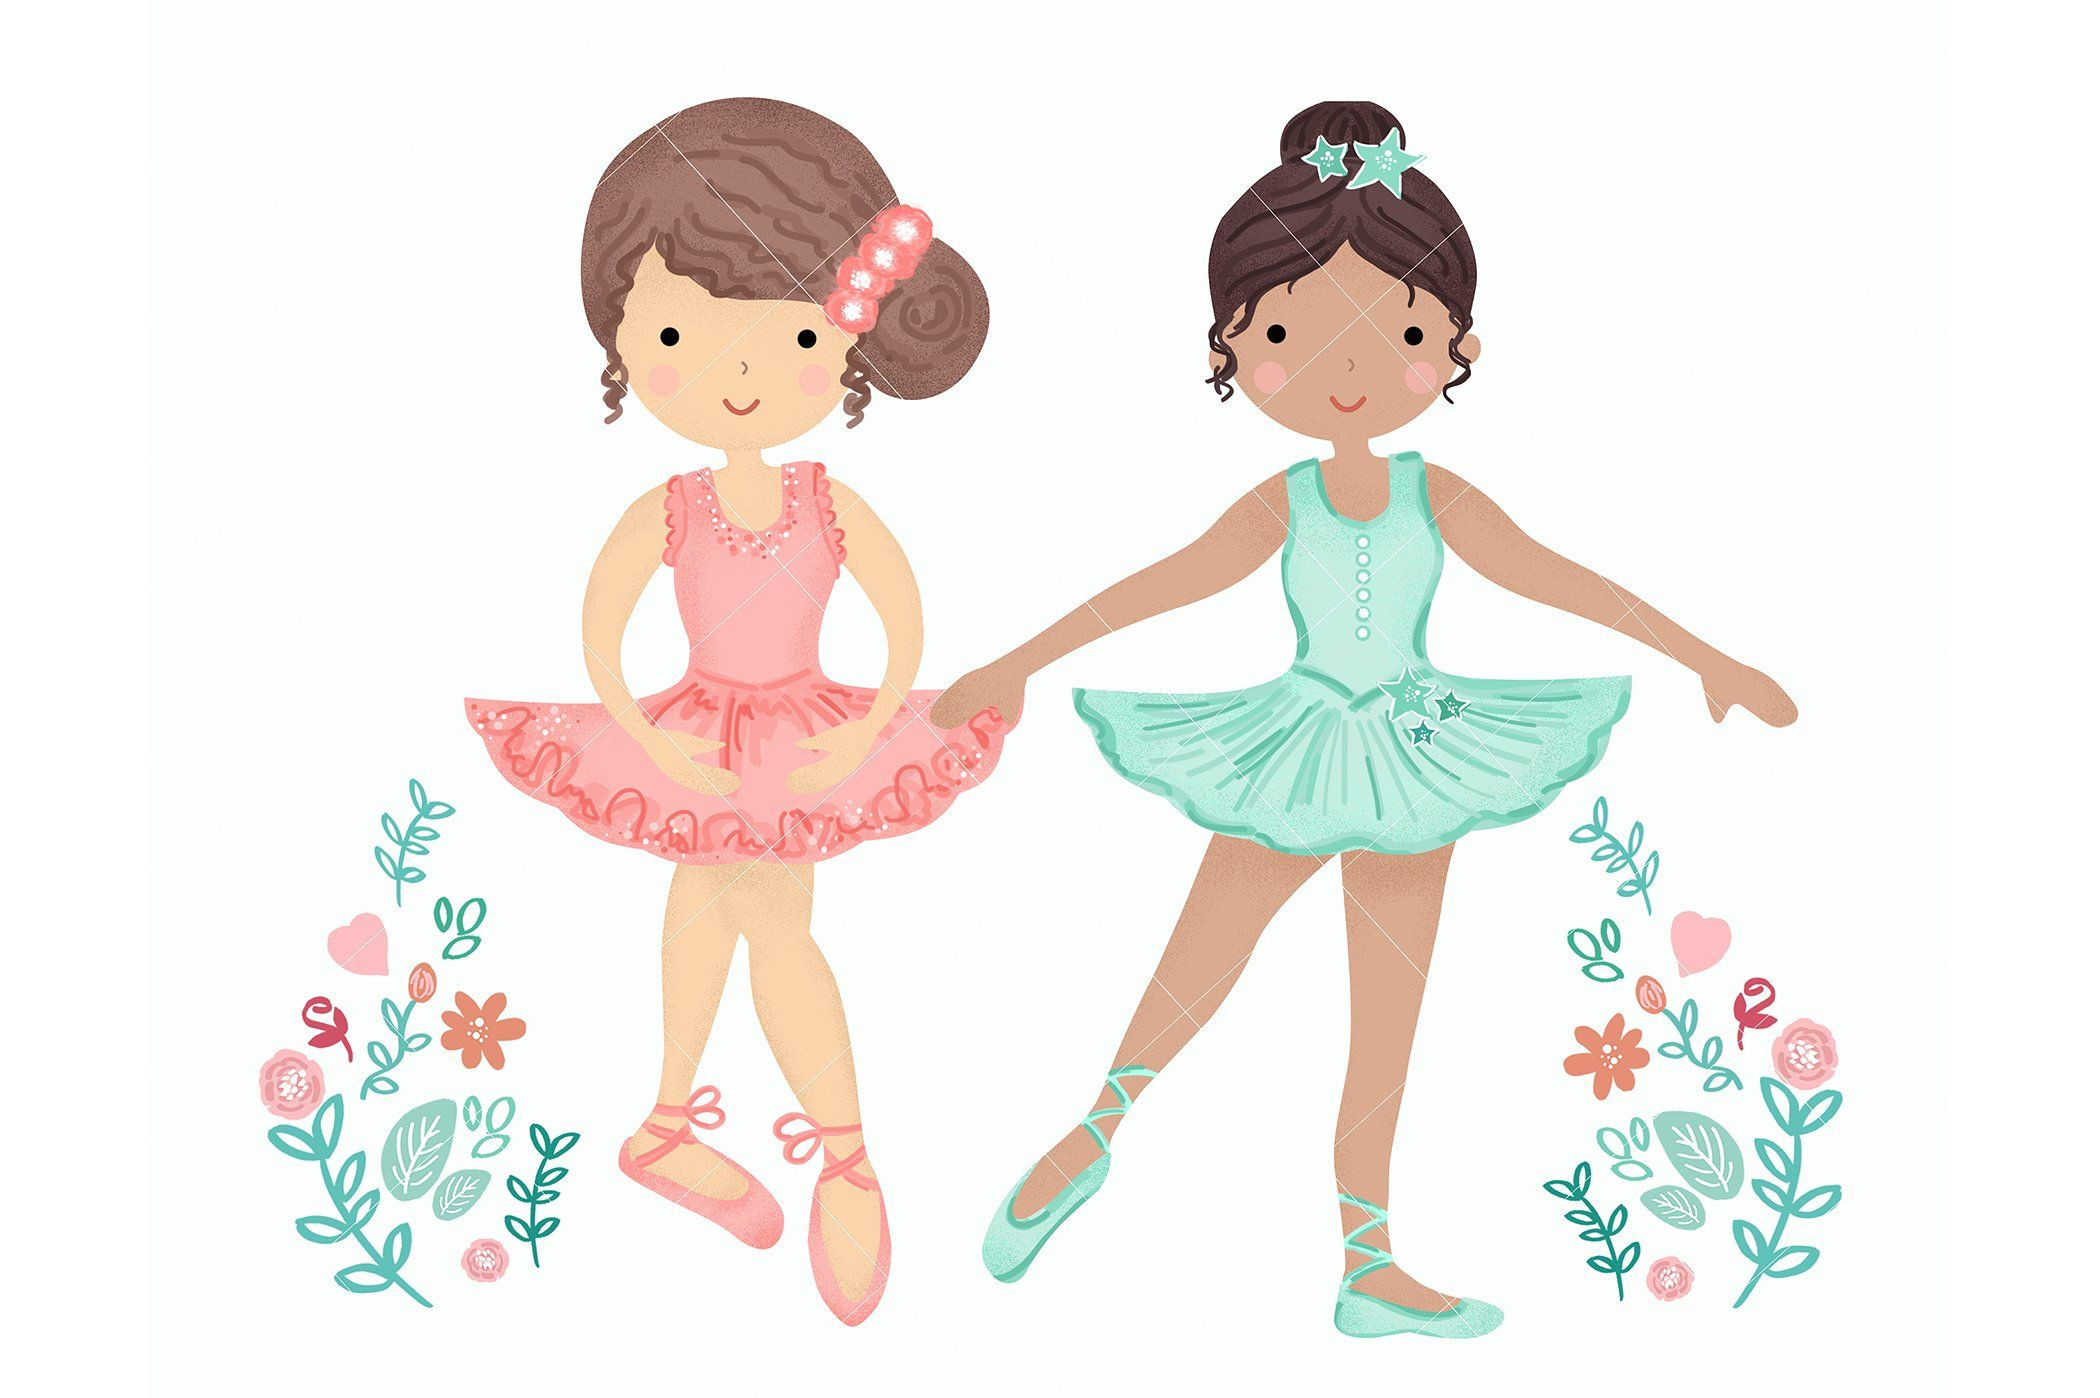 Ballerina Ballet Dancers Clipart by EasyPrint PD on.